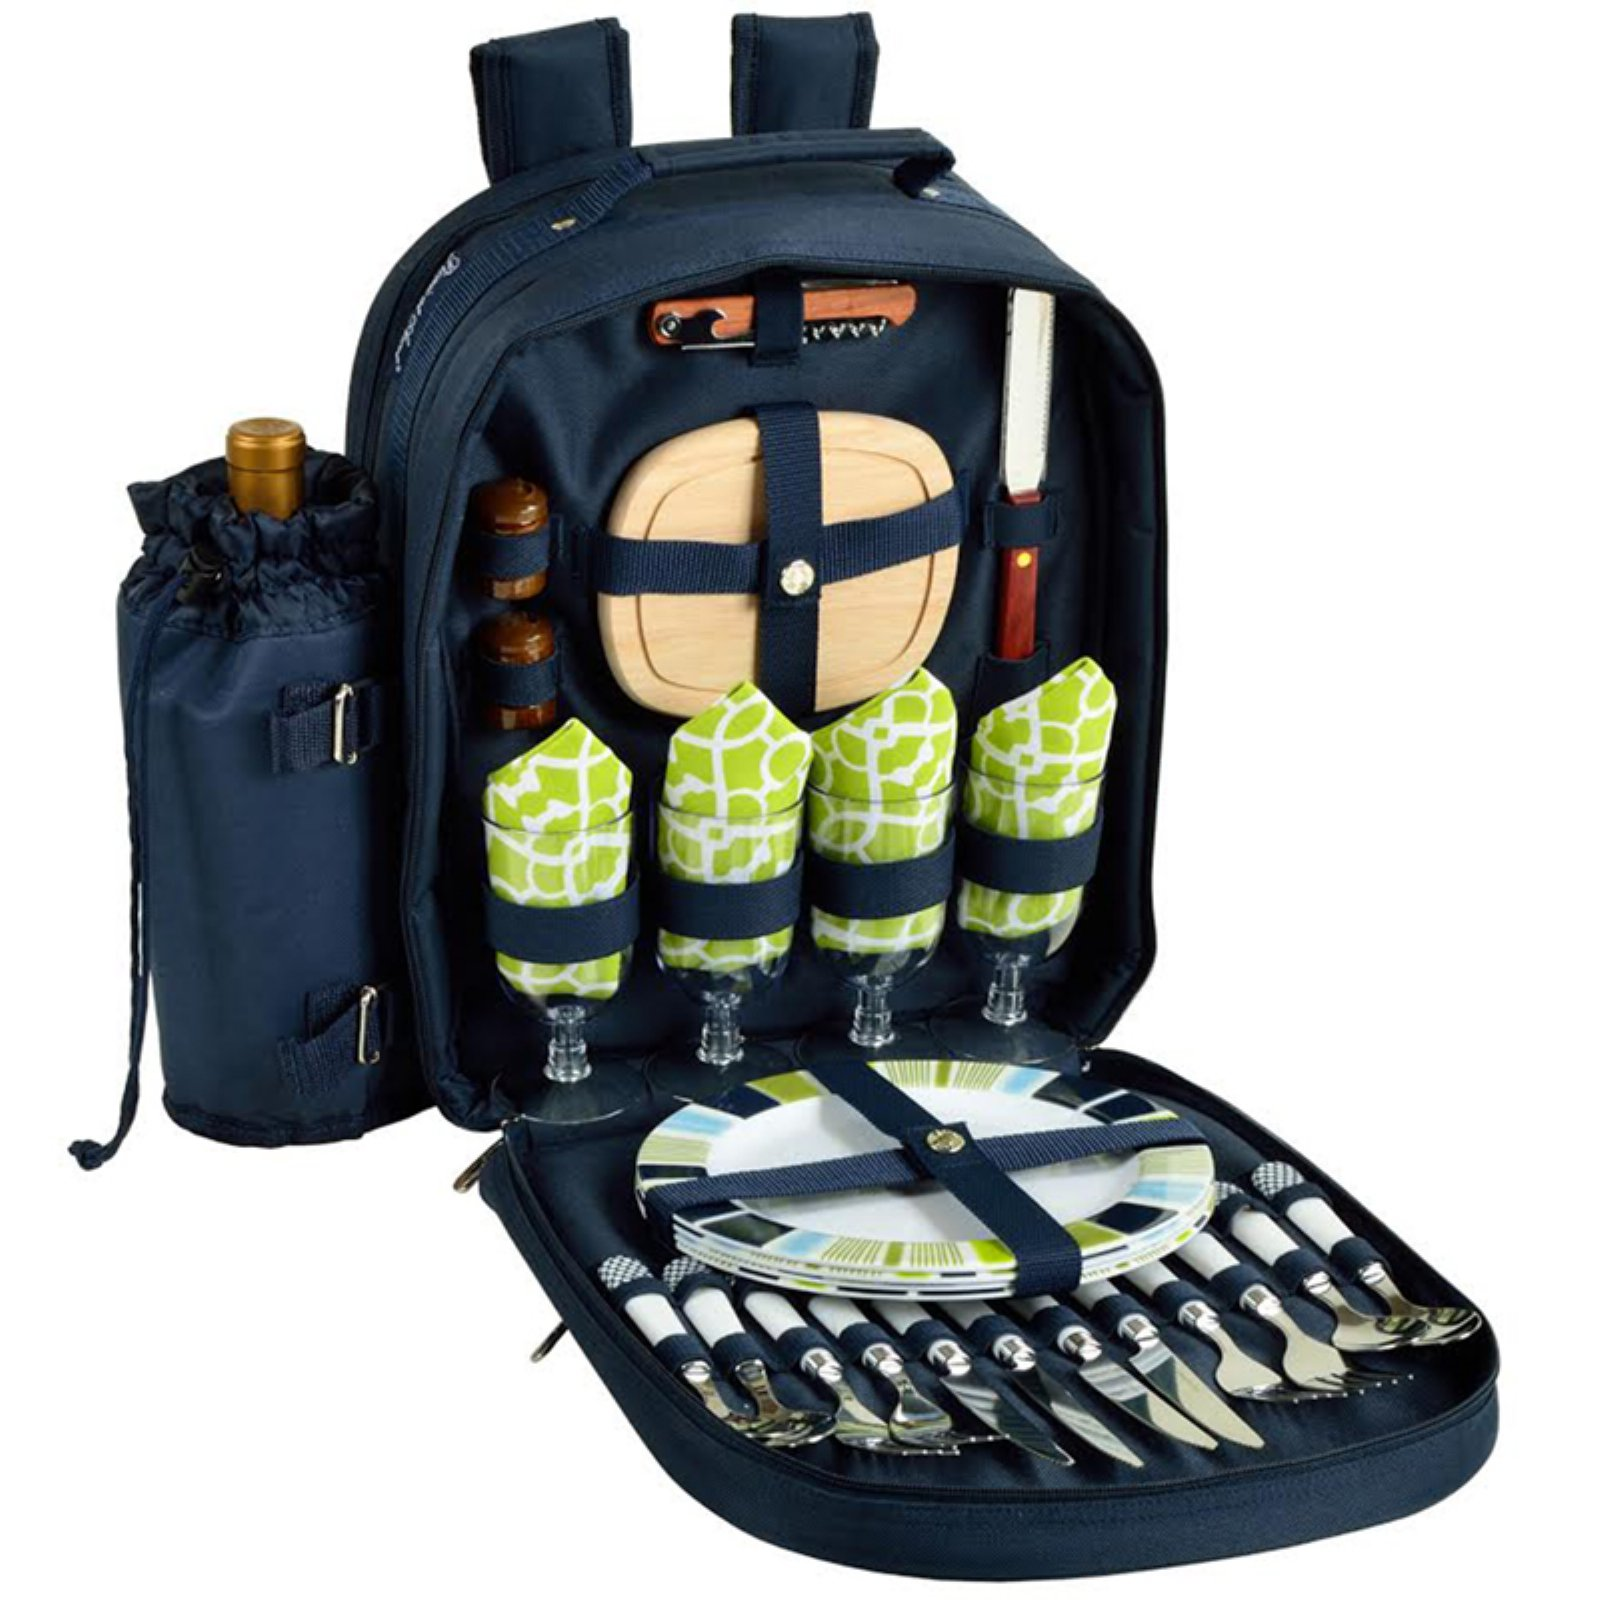 Picnic At Ascot Picnic Backpack for 4